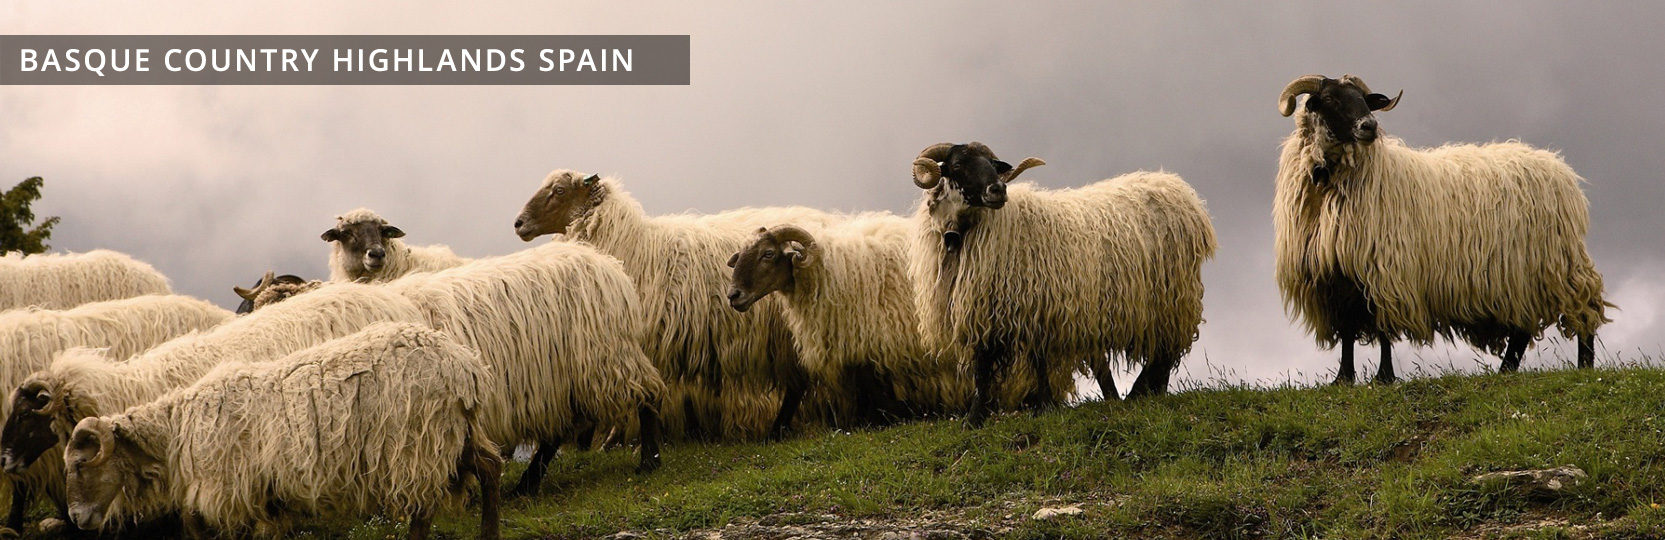 Just Follow Me Basque Country Highlands Spain